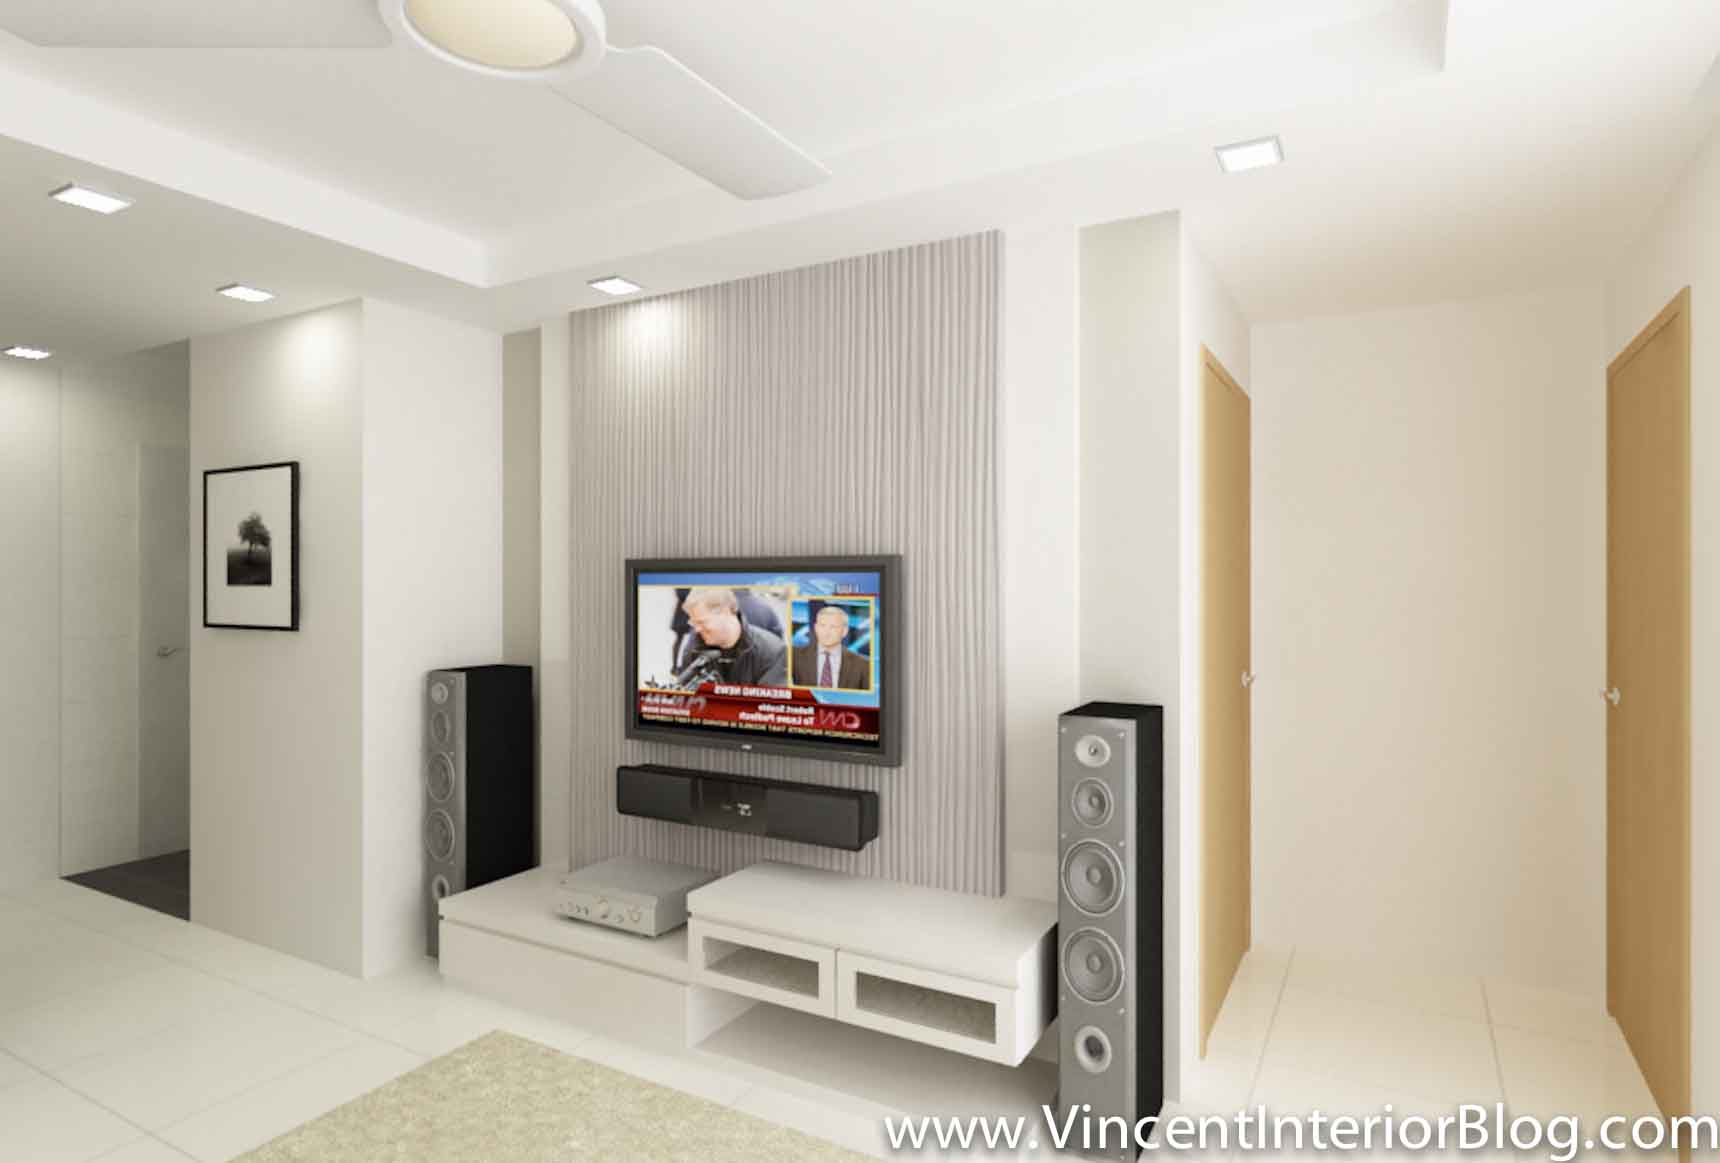 3 room HDB SengKang Living Room 3 Vincent Interior Blog Vincent